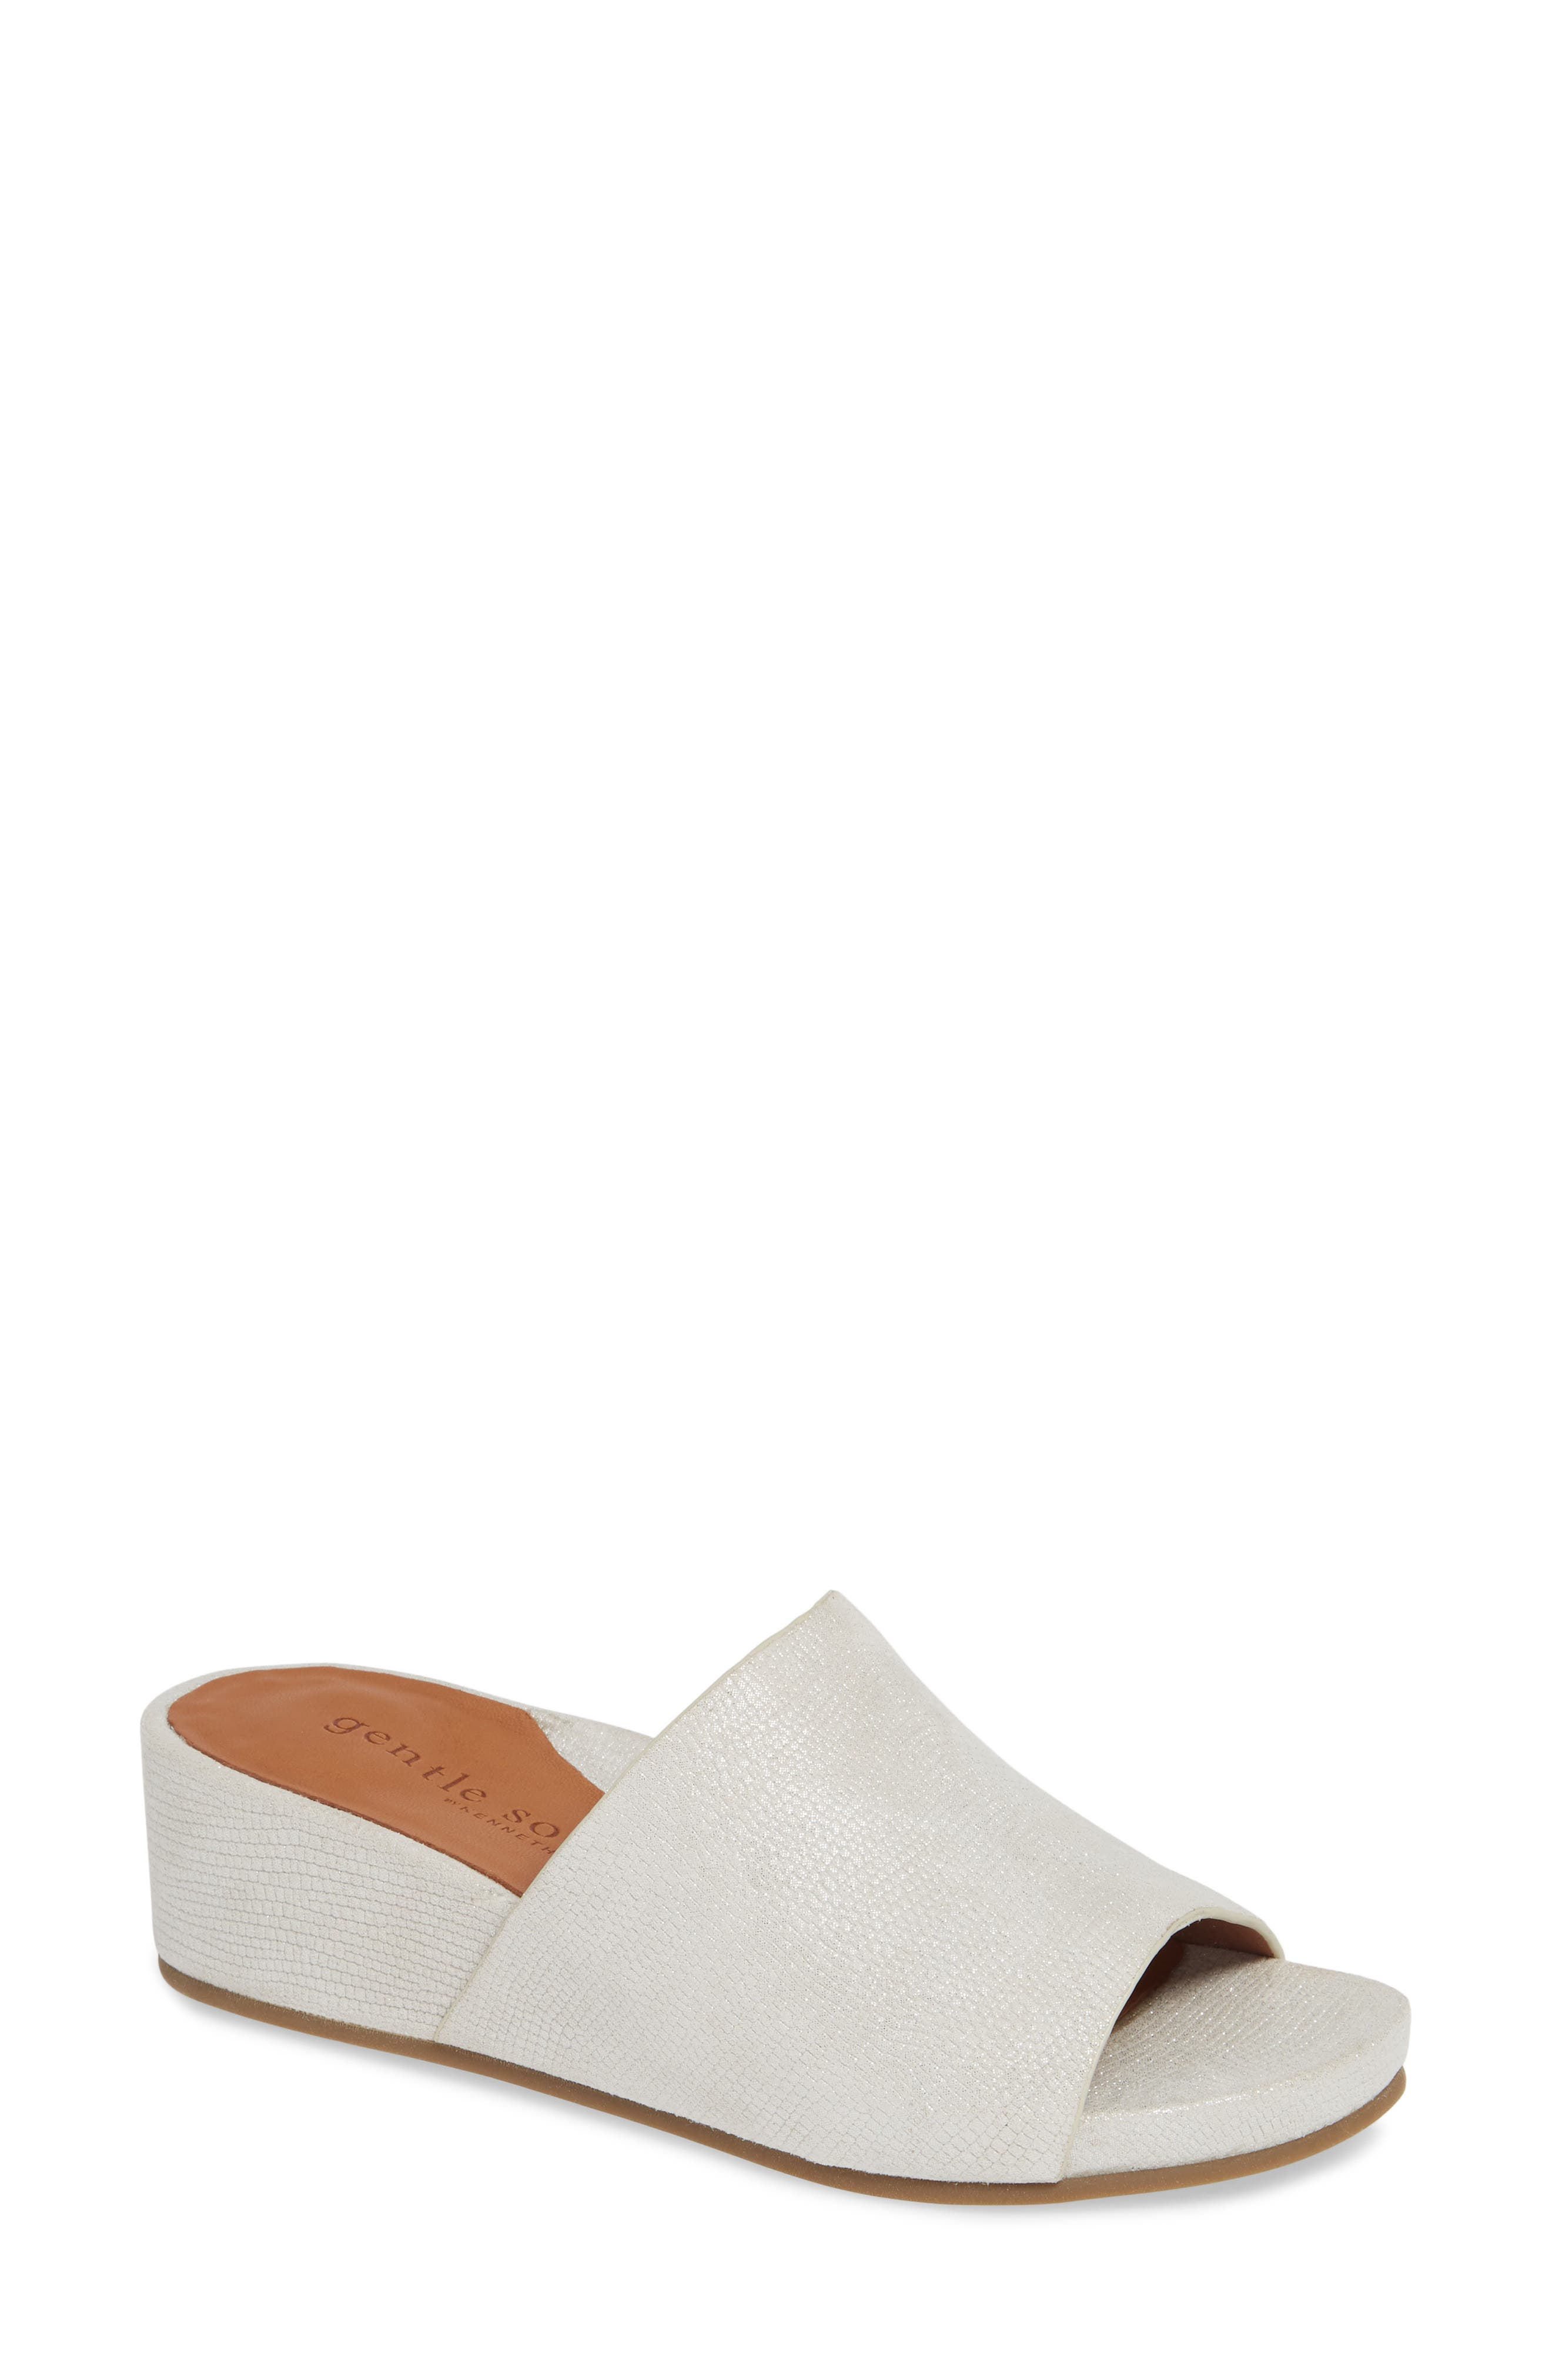 GENTLE SOULS BY KENNETH COLE, Gisele Wedge Slide Sandal, Main thumbnail 1, color, WHITE EMBOSSED LEATHER